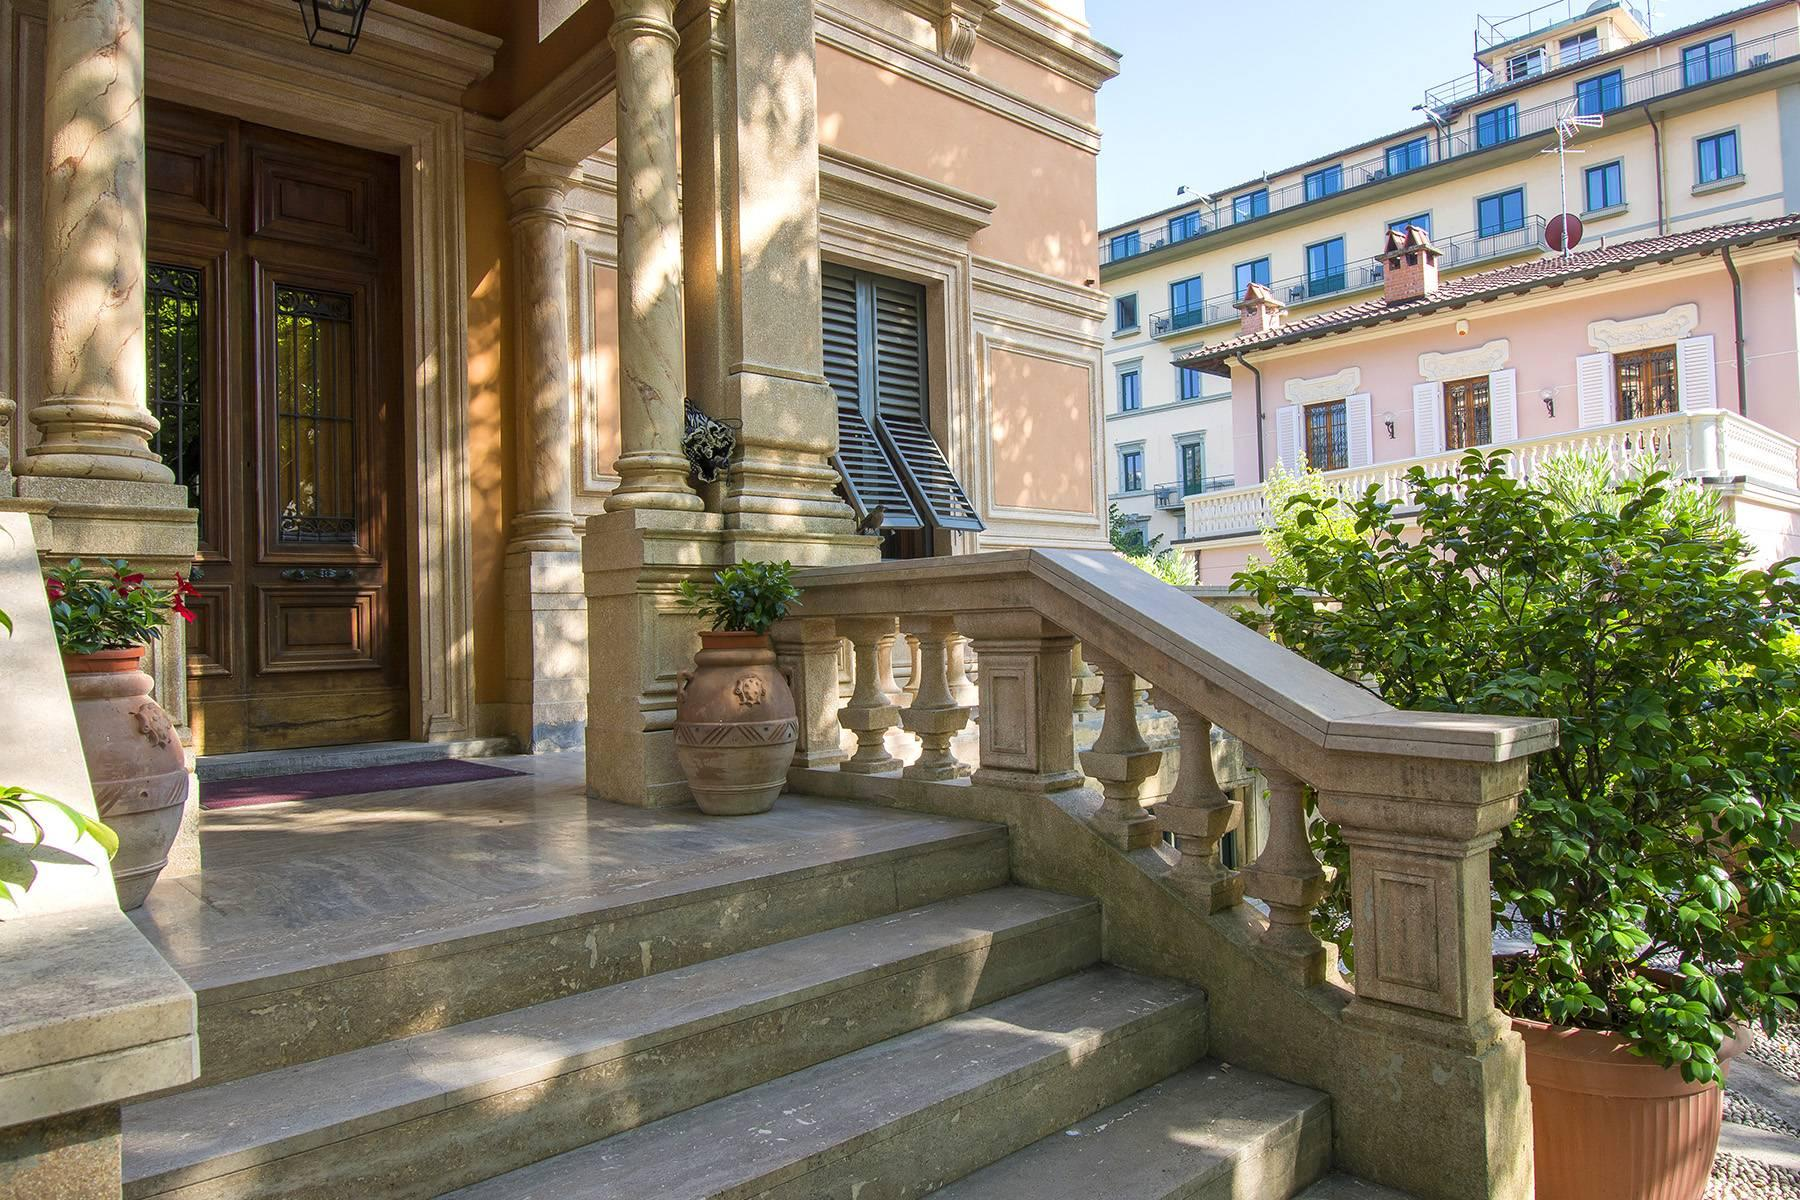 Luxury Art Nouveau Villa in the heart of Montecatini Terme - 2